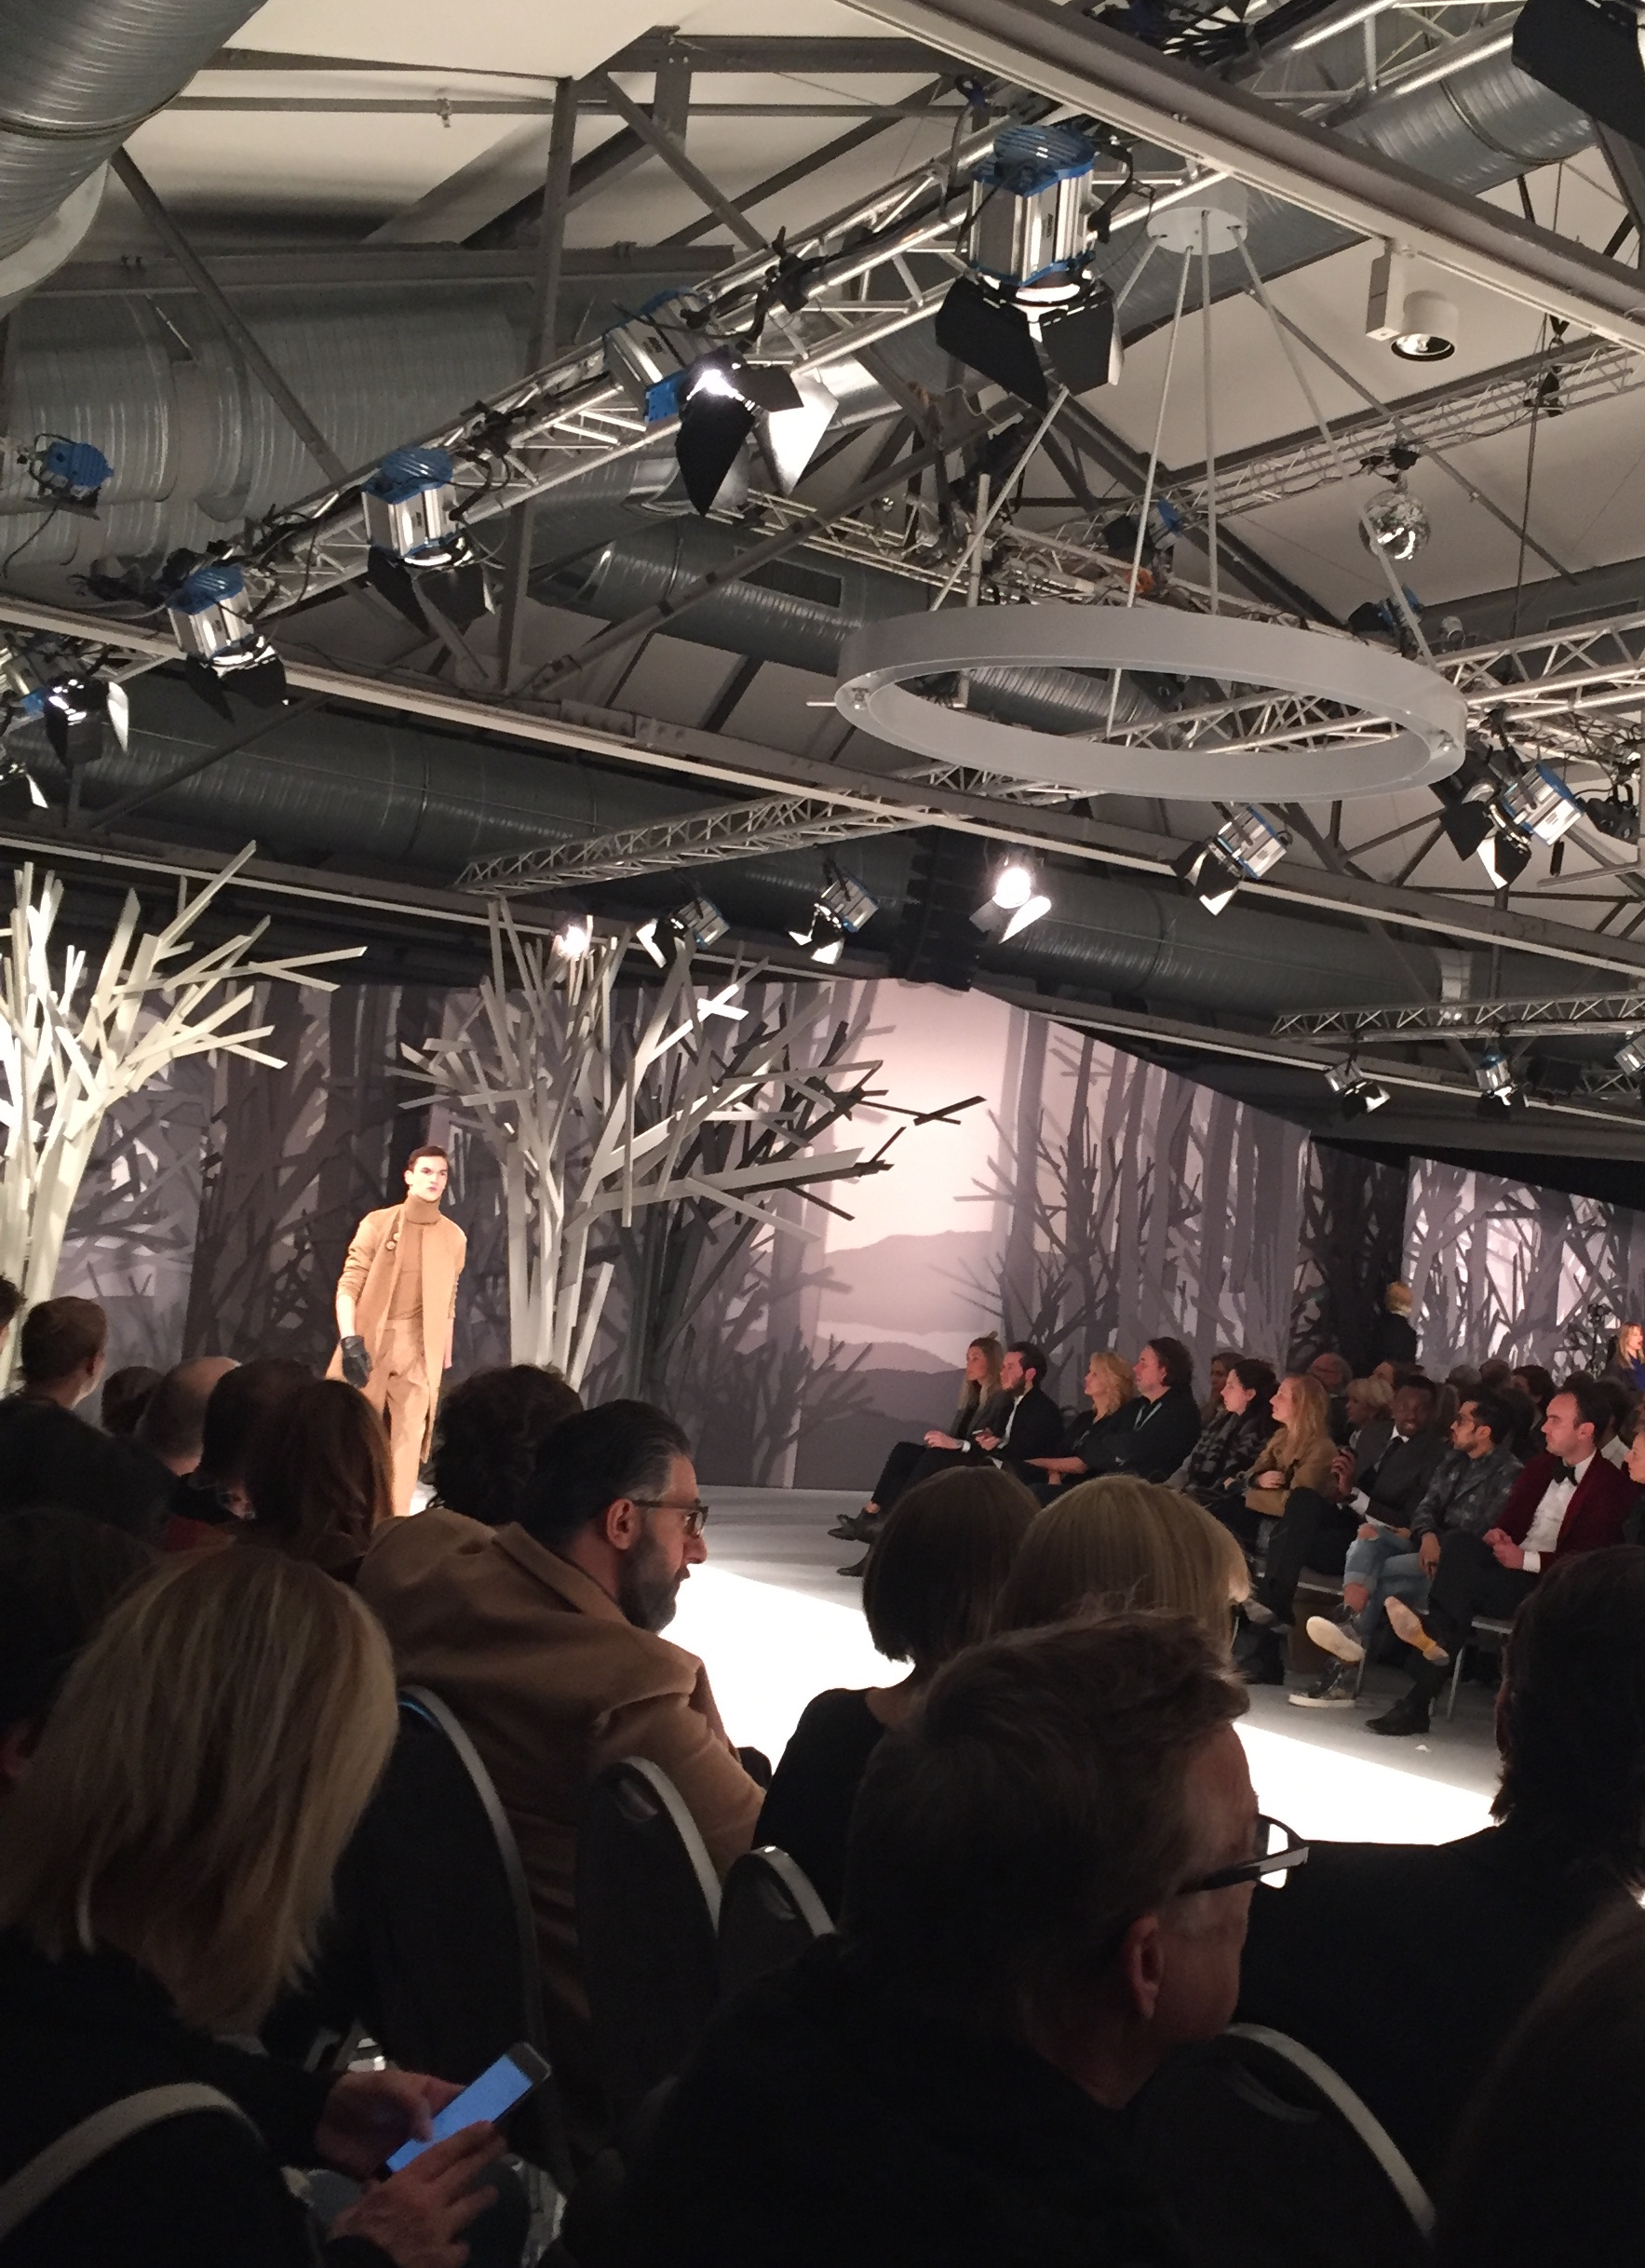 MBFW, Fashion Week, Berlin, Ellington, Kilian Kerner, Show